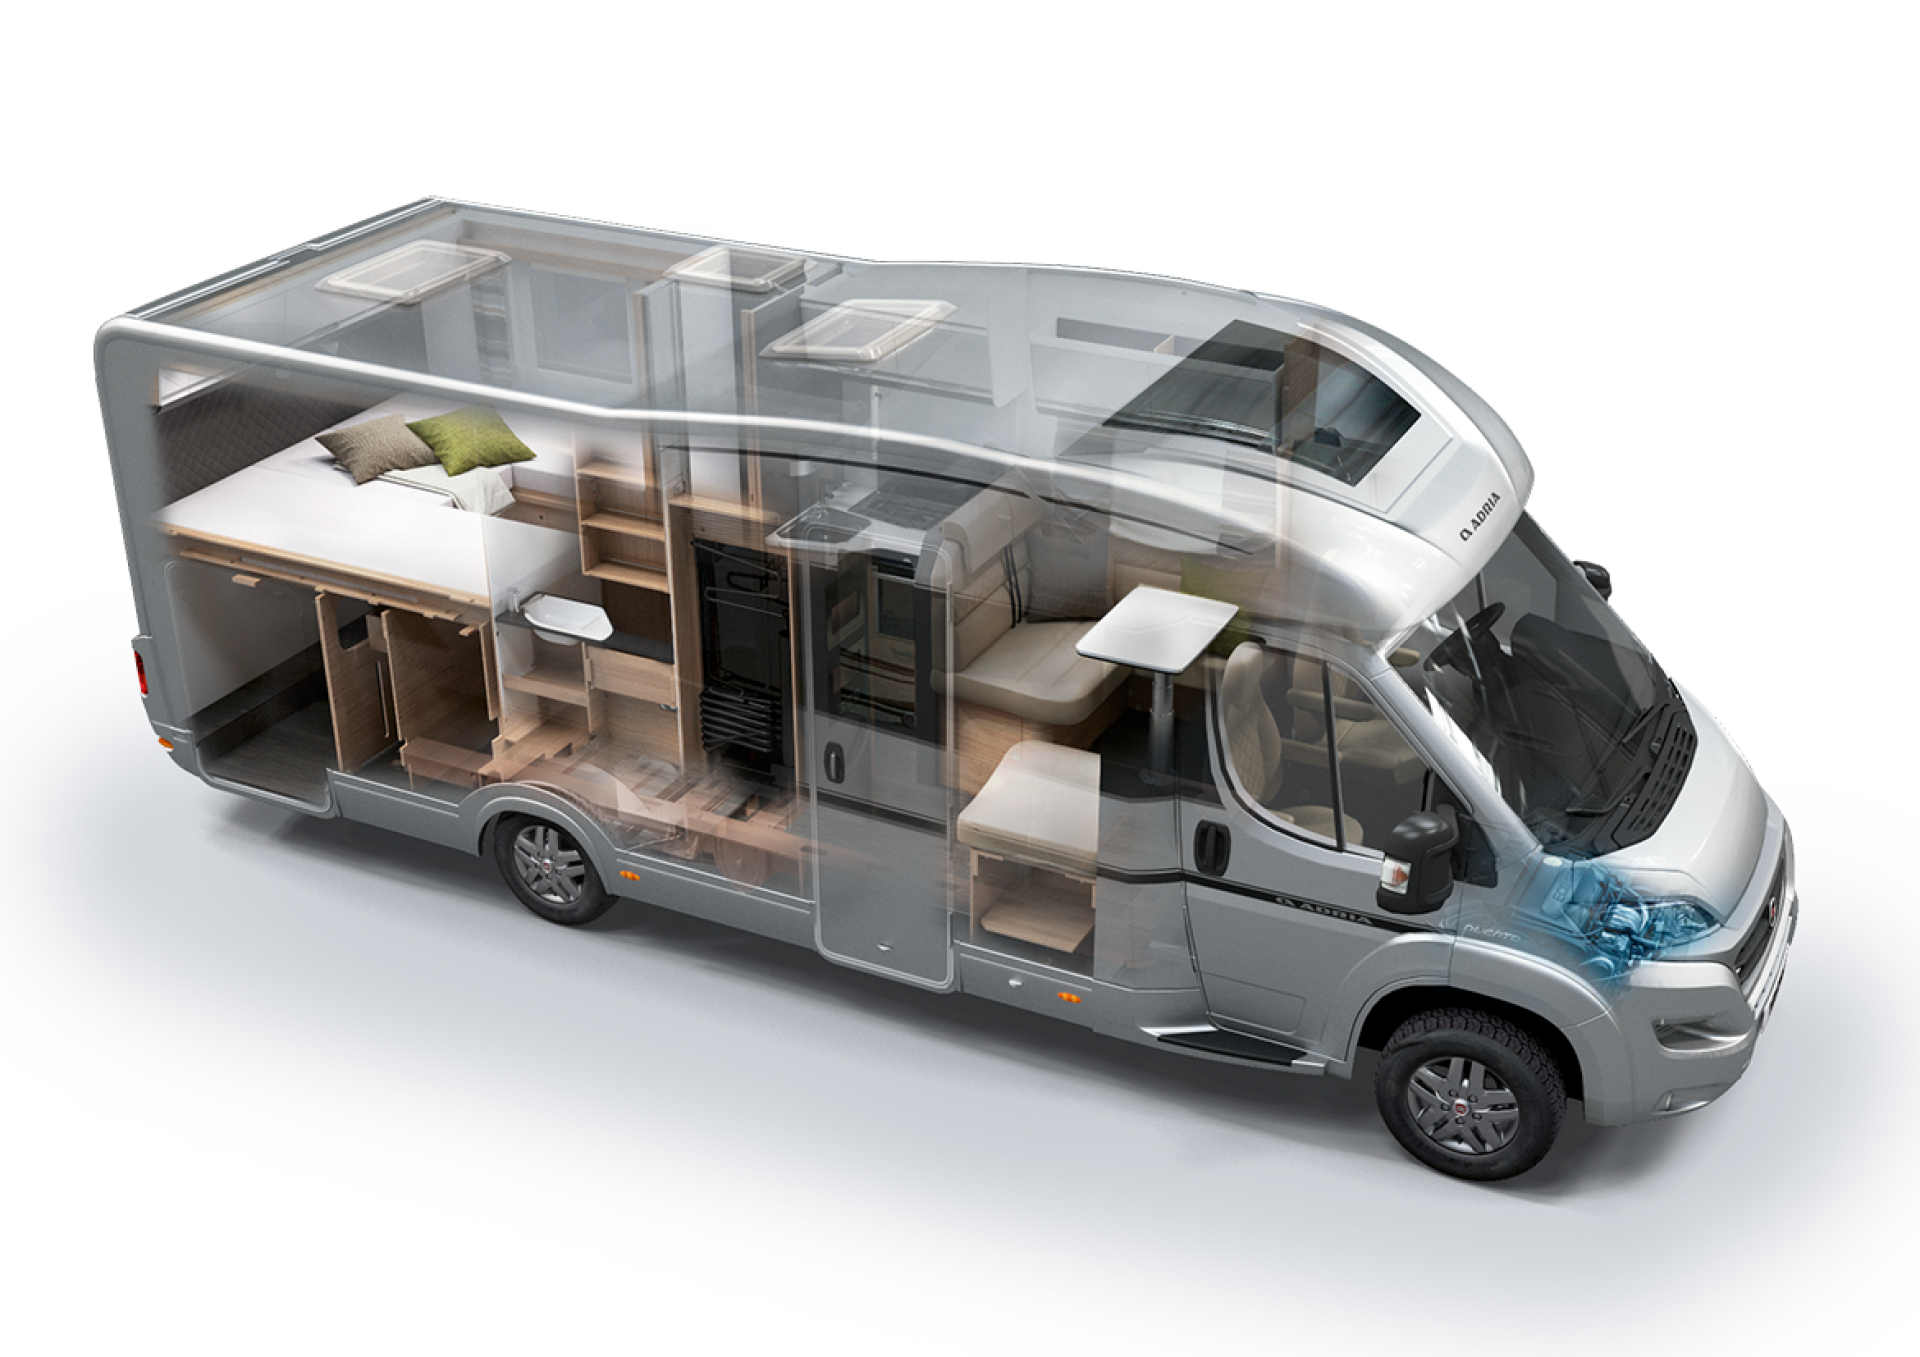 motorhome-cutout-new